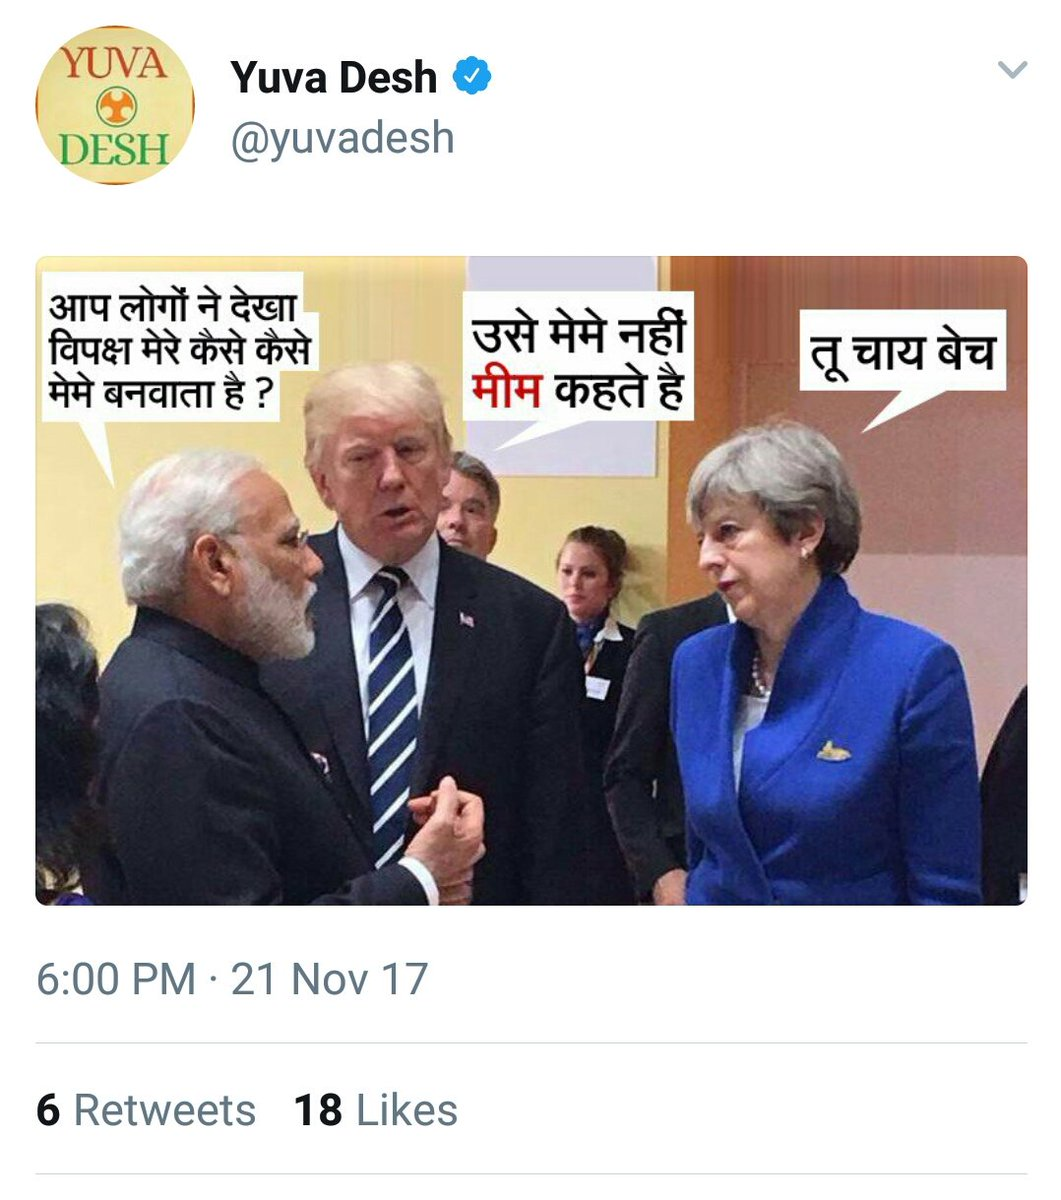 Congress has once again displayed its anti-poor mindset through such tweets. Upcoming elections will be another reality check for them.